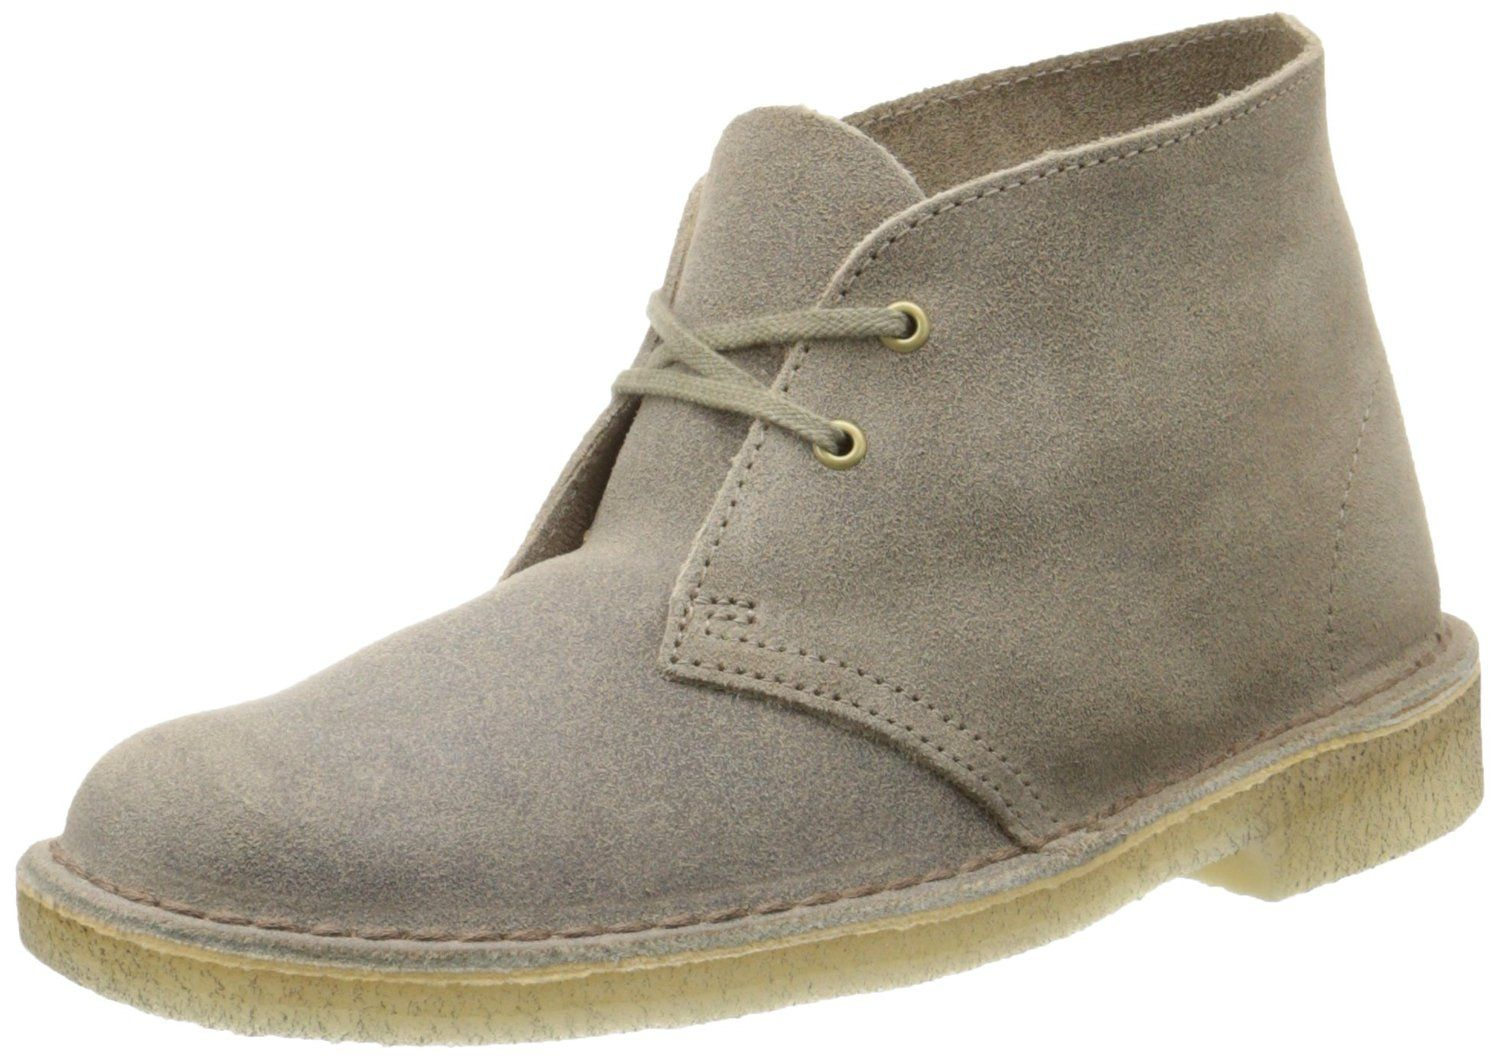 CLARKS Women's Desert Boot Ankle Bootie Review